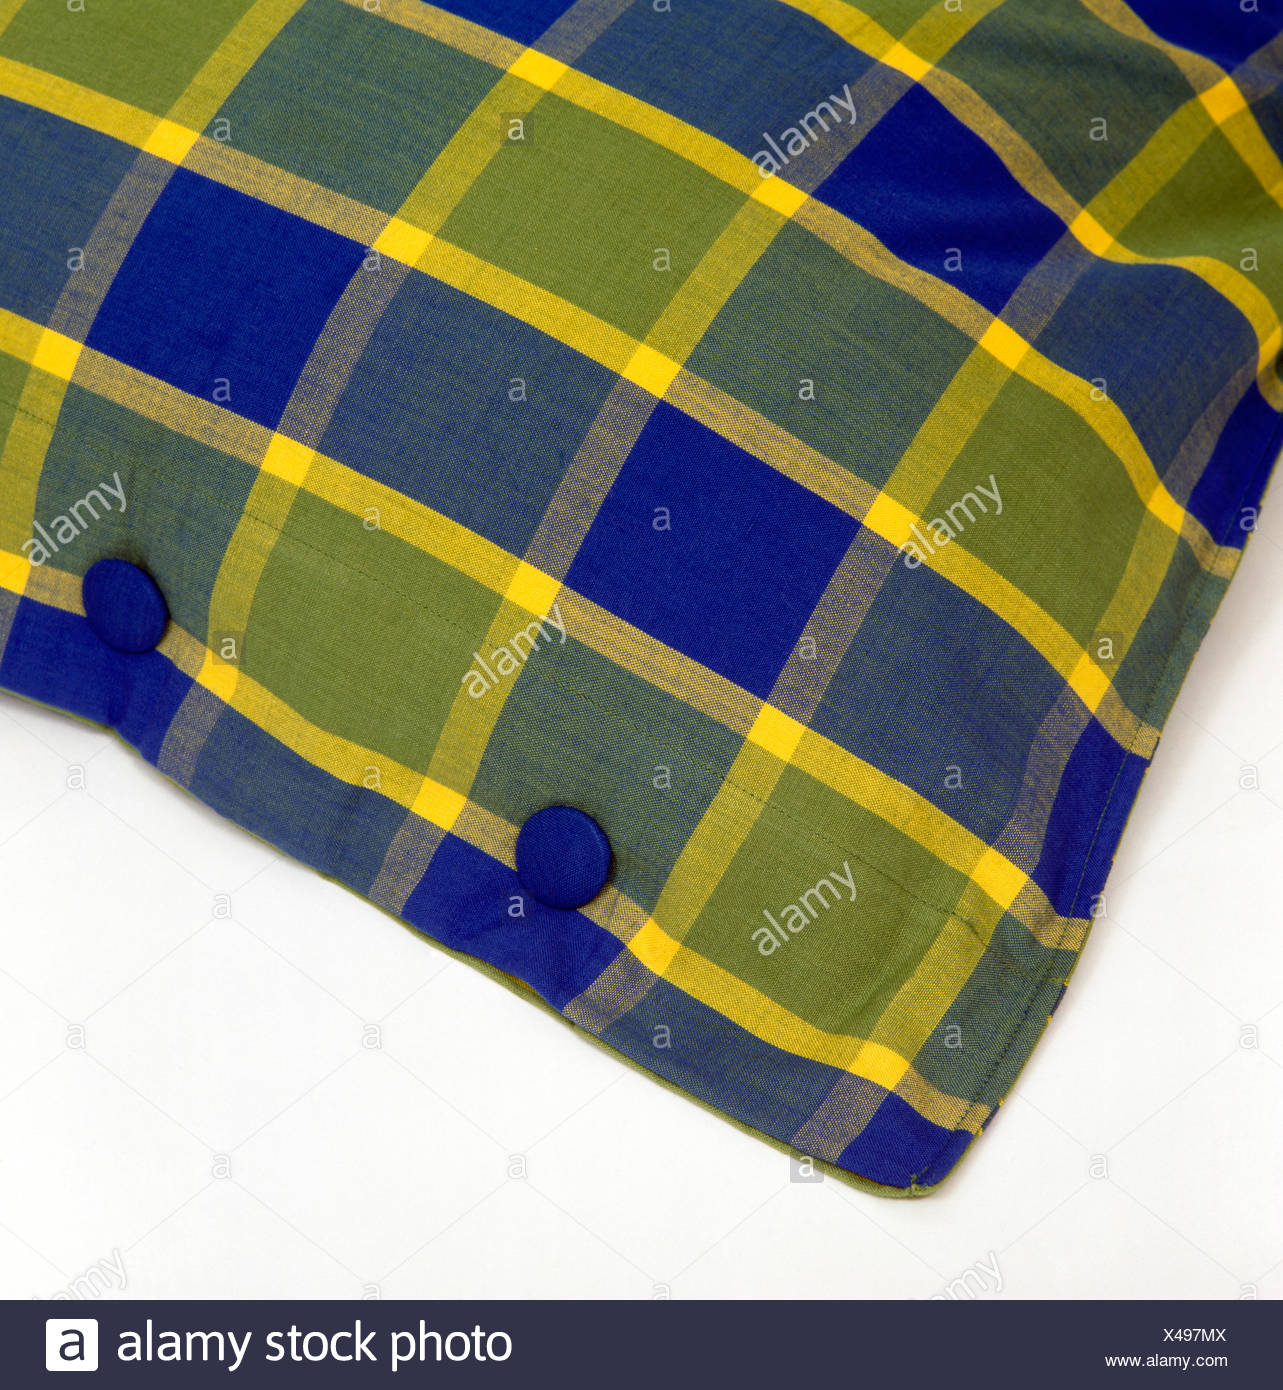 Close-up of a buttoned blue+green cushion - Stock Image